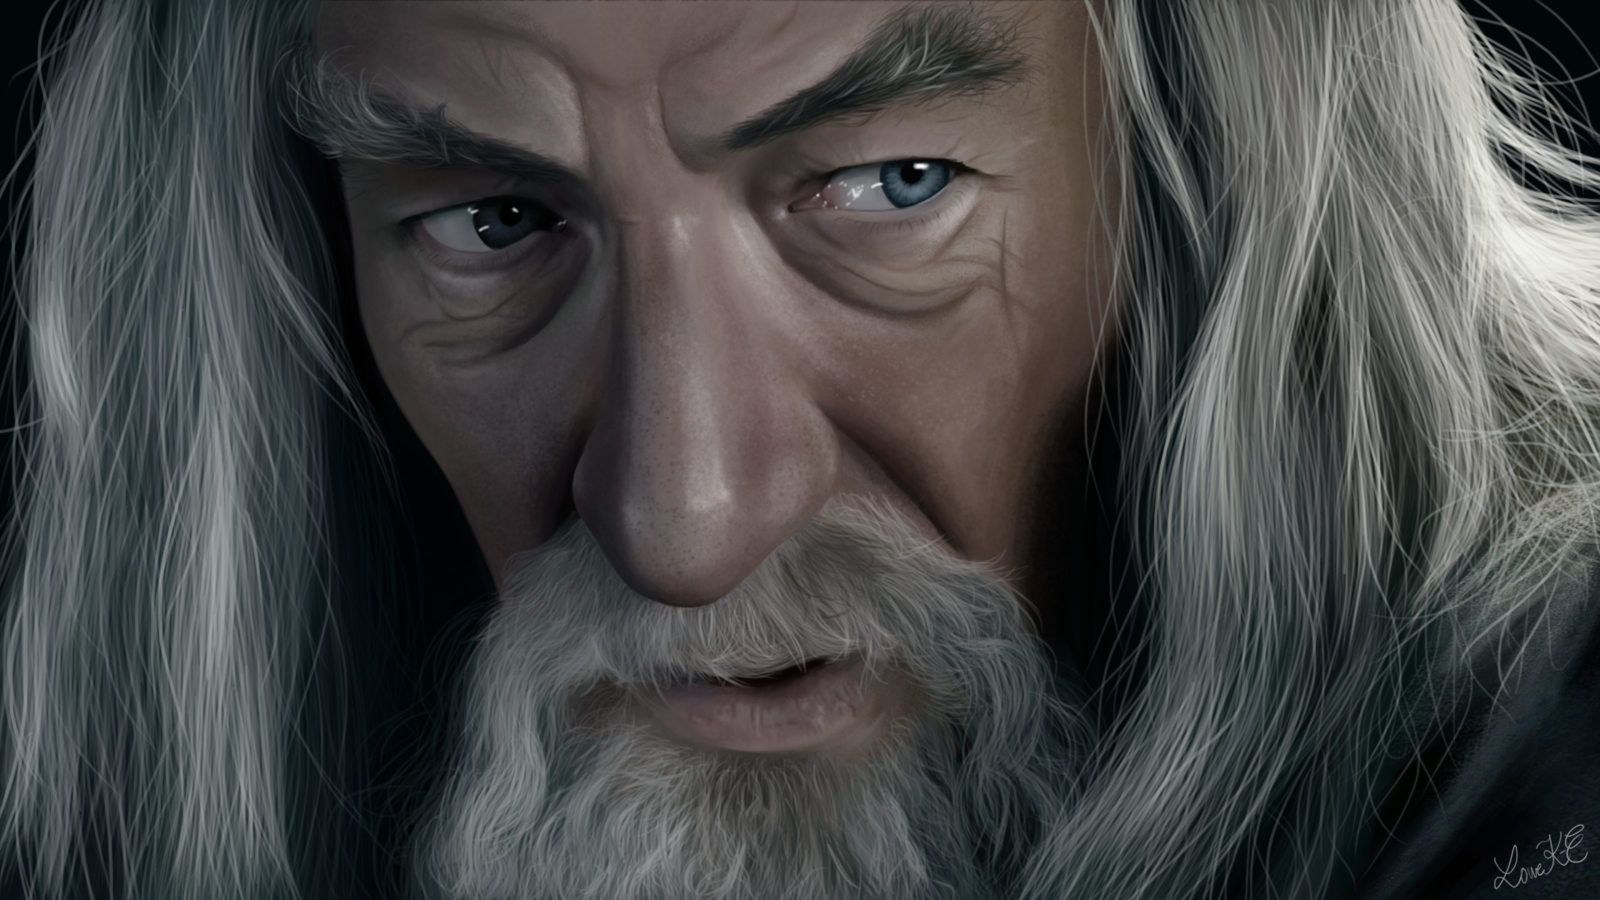 Gandalf the Grey by LotsOfLowe Gandalf the Grey by LotsOfLowe